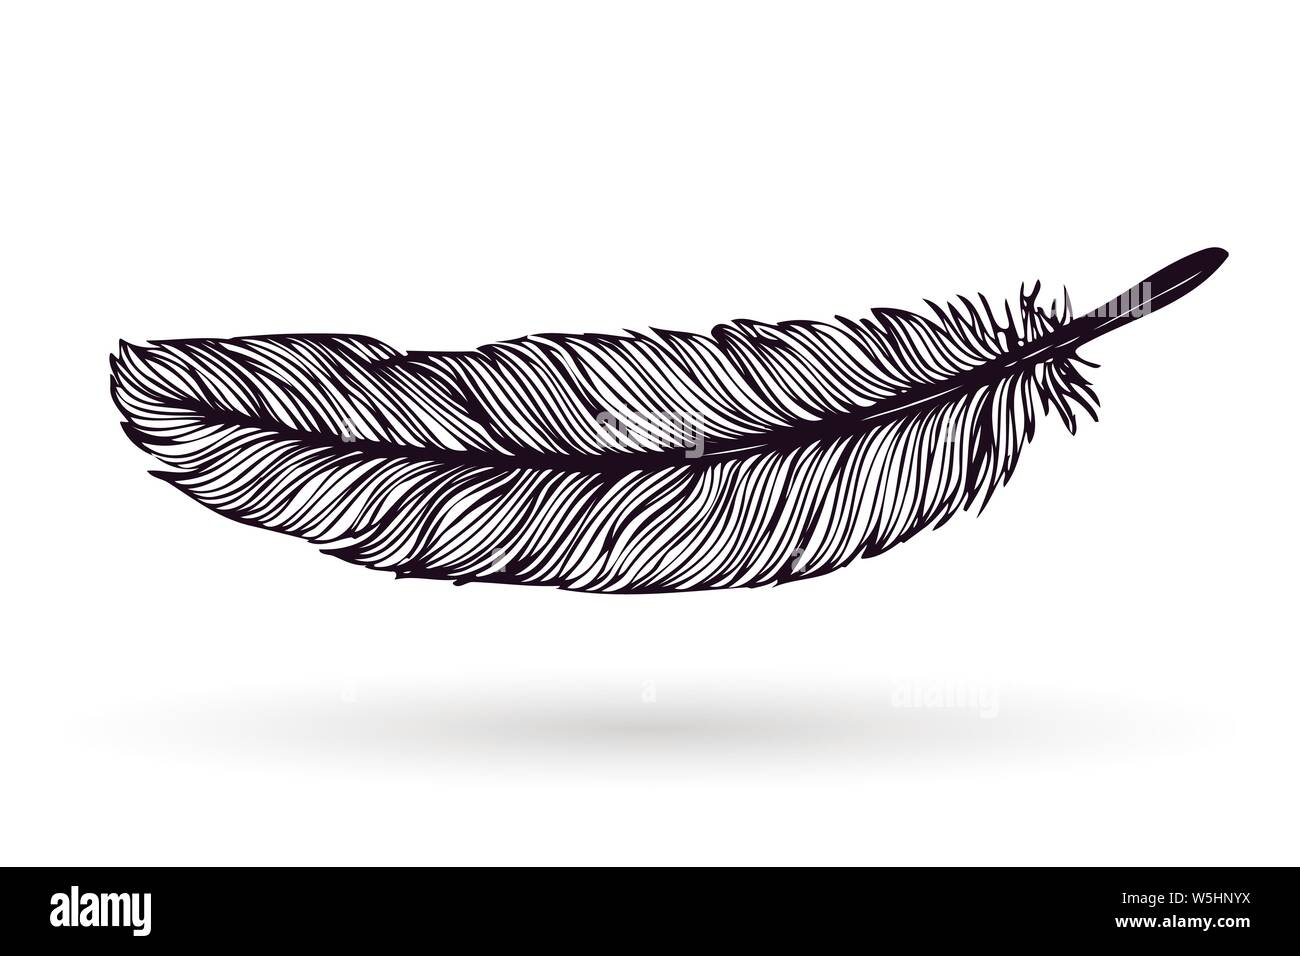 Hand drawn feather isolated on white background. Artistic ink vector illustrations. Vintage tribal feather. Outline vector drawing. Stock Vector